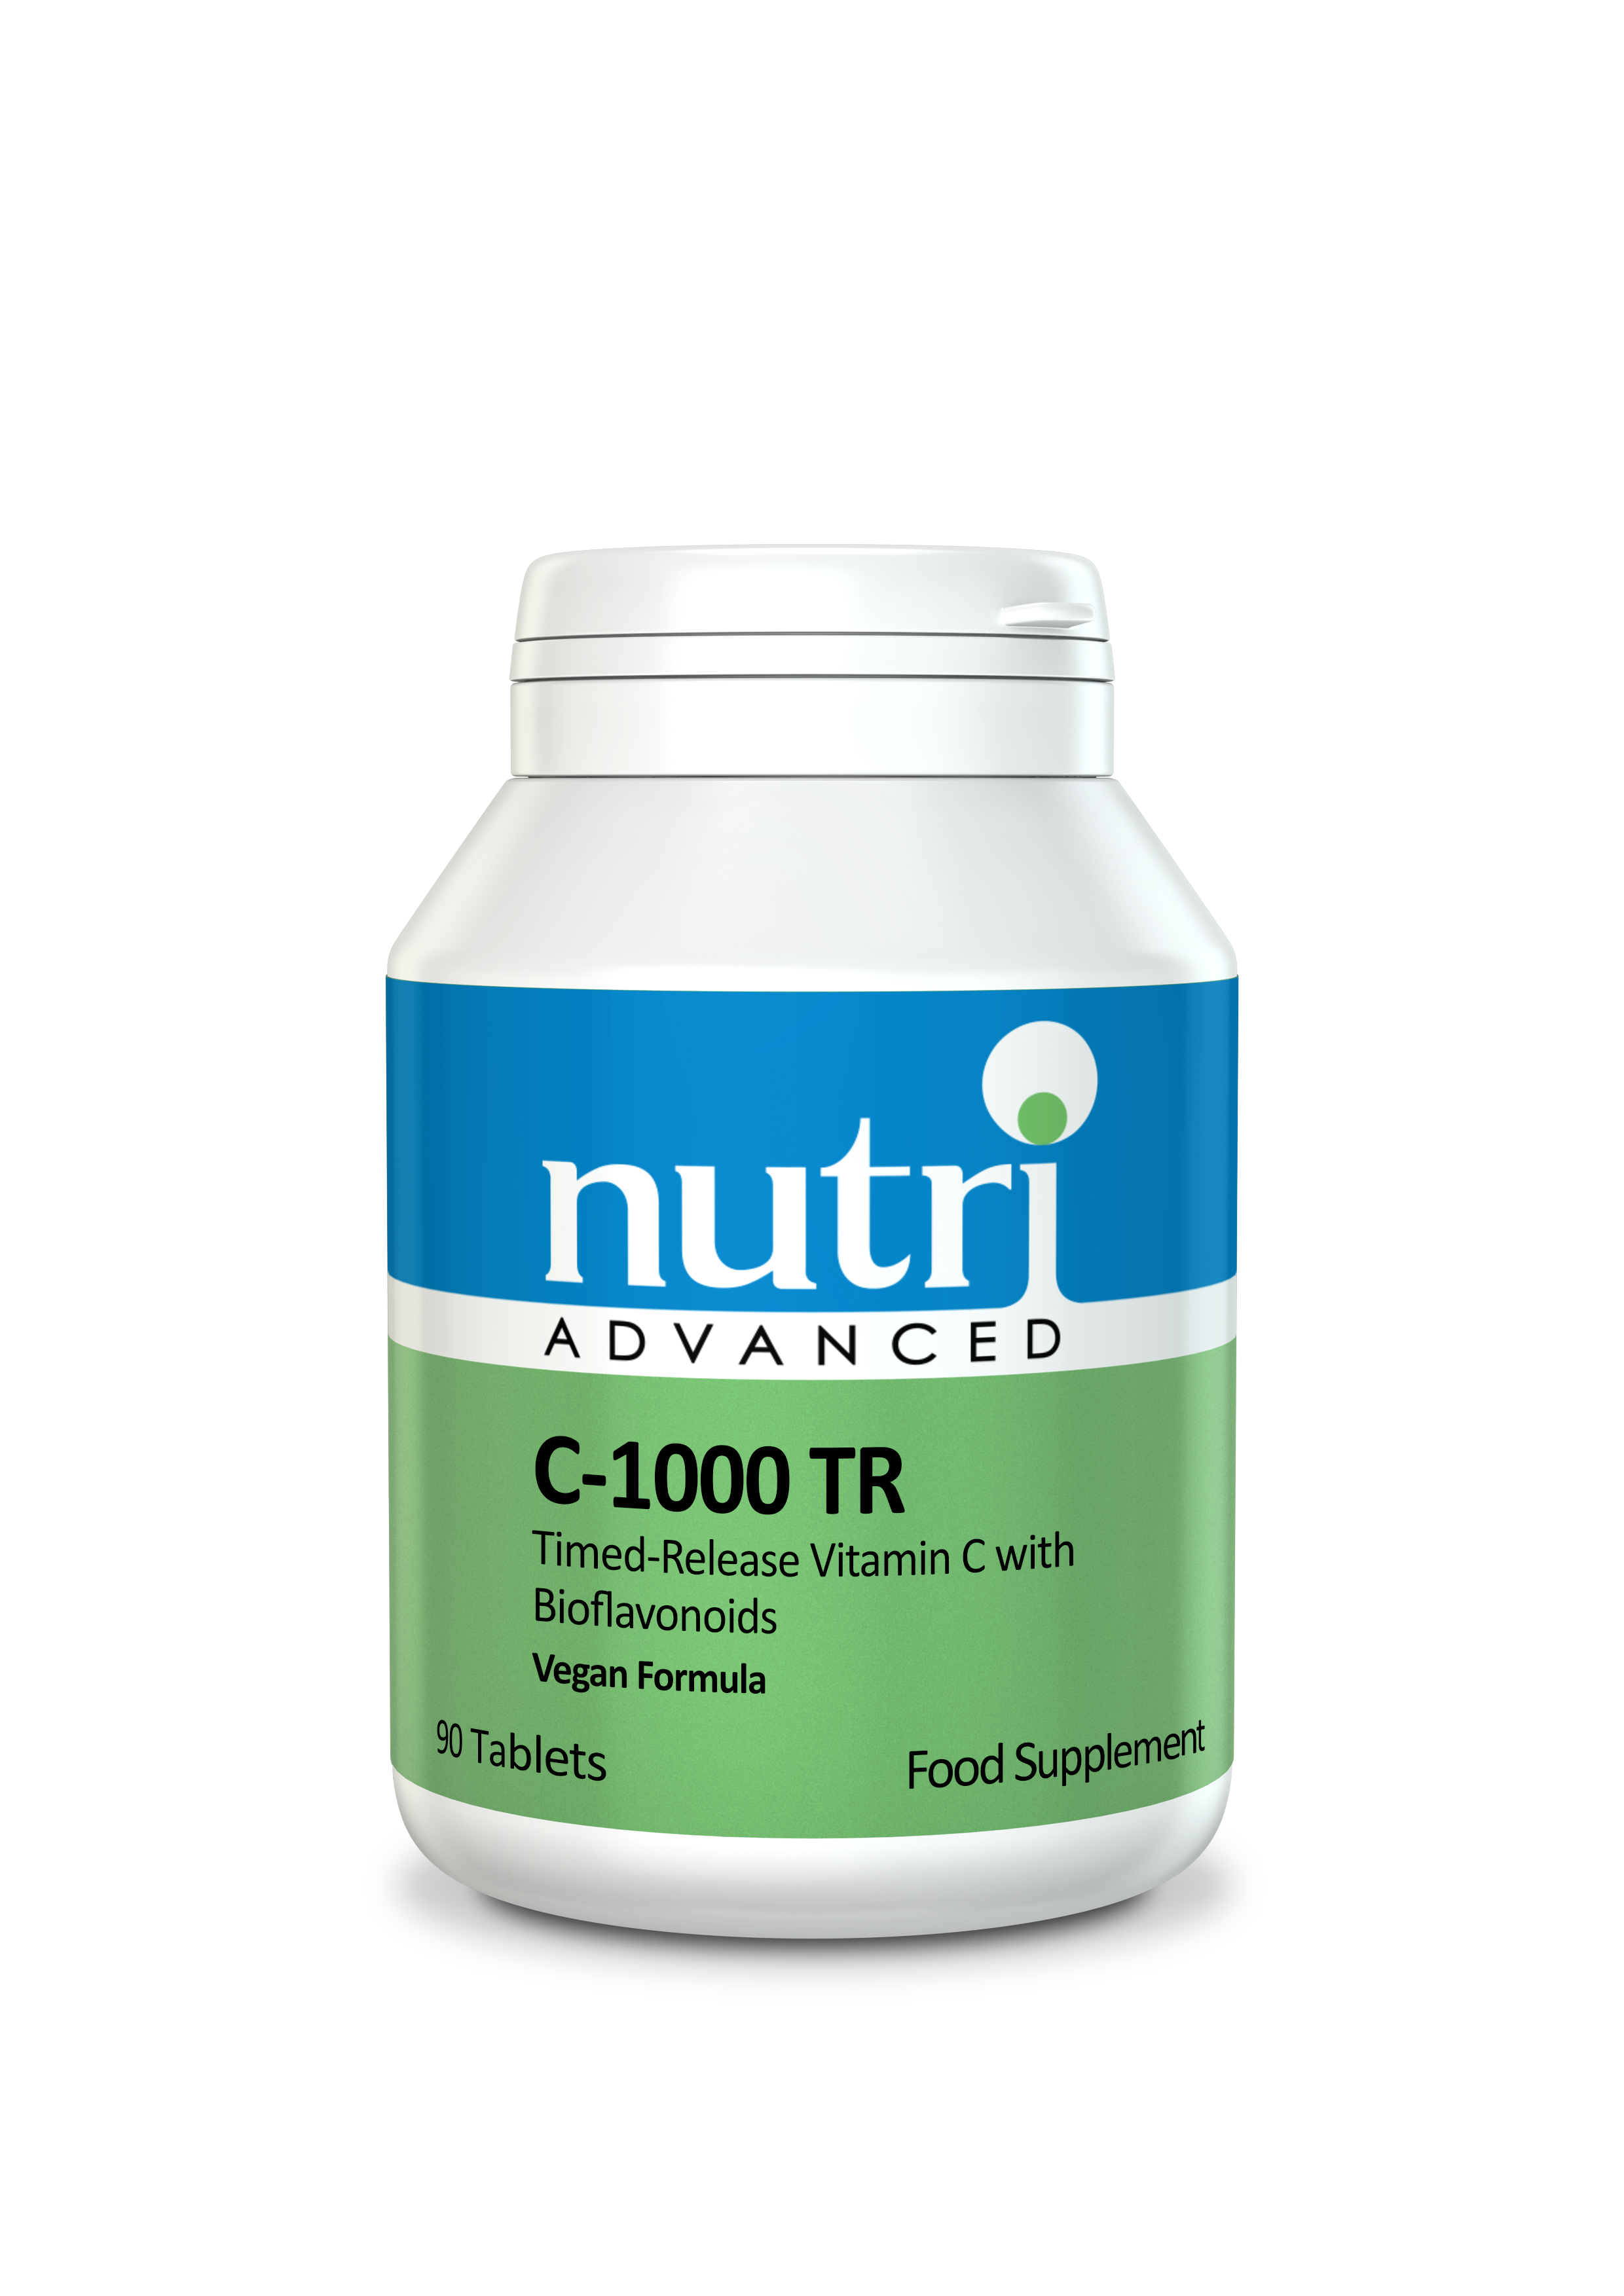 Nutri Advanced C-1000 TR